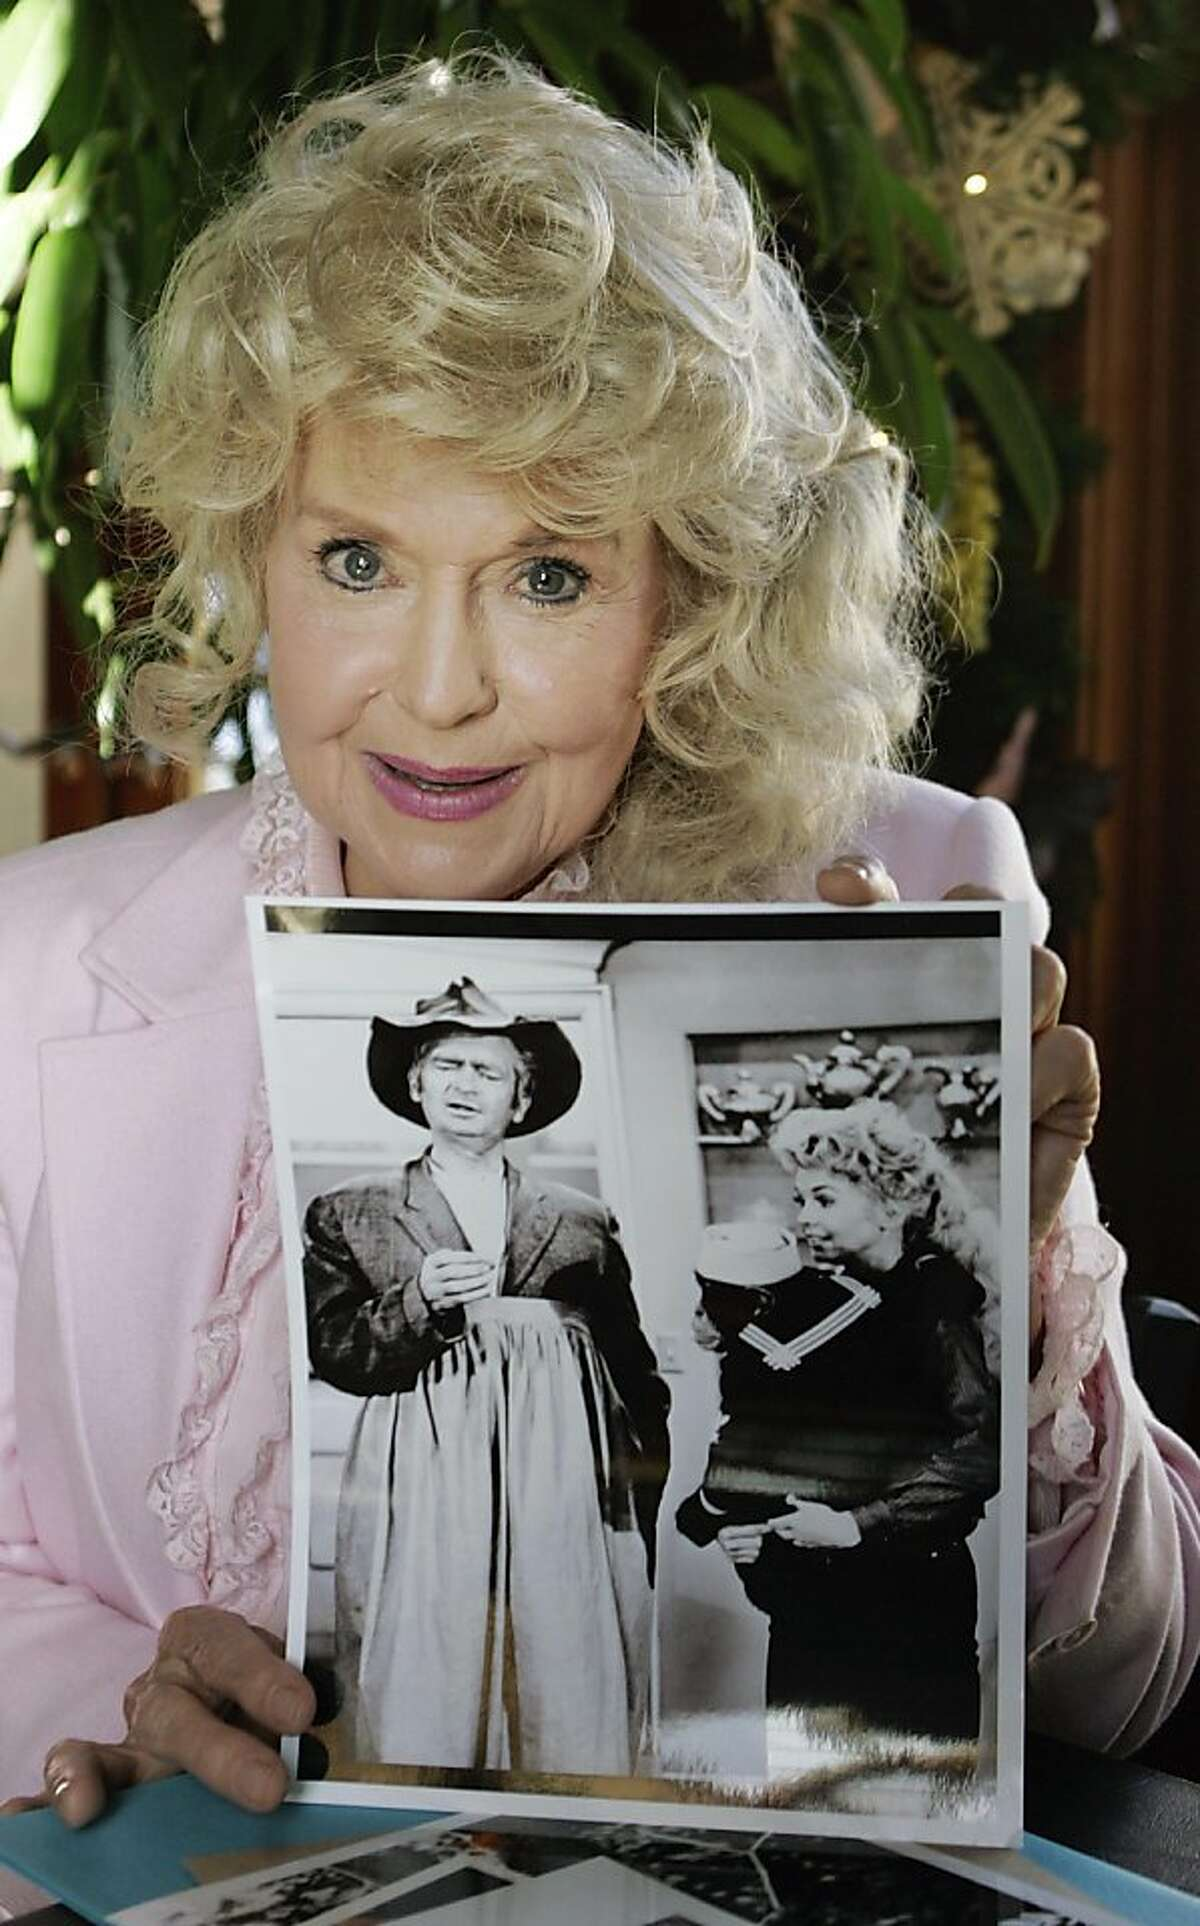 """FILE - In this Jan. 8, 2009 photo, Donna Douglas, who starred in the television series """"The Beverly Hillbillies"""" poses with a photo from the show in Baton Rouge, La. The actress who played Elly May Clampett on the show, toymaker Mattel Inc. and CBS Consumer Products Inc. have settled a lawsuit in which Douglas claimed the companies didn't get her approval to use her name and likeness for a Barbie doll. A one-sentence order Tuesday, Dec. 27, 2011 in U.S. District Court in Baton Rouge said only that a settlement had been reached. (AP Photo/Bill Haber)"""